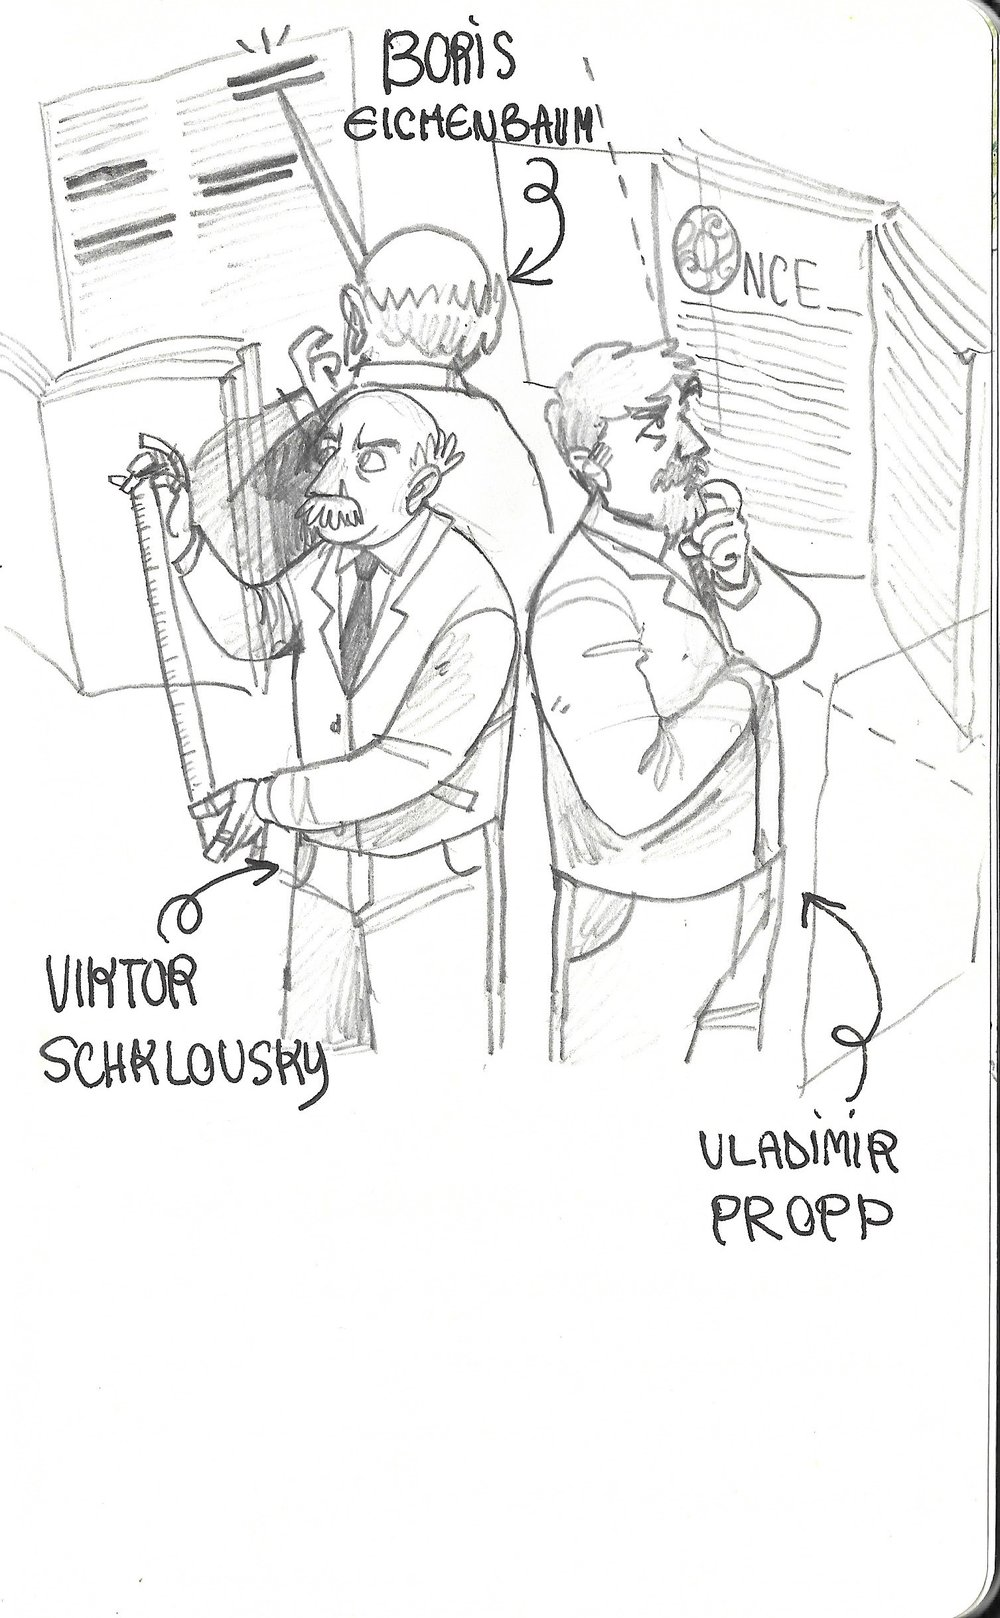 Illustration of the key members of the Russian Formalist literary criticism school, who had brought significant contributions to narrative theory.